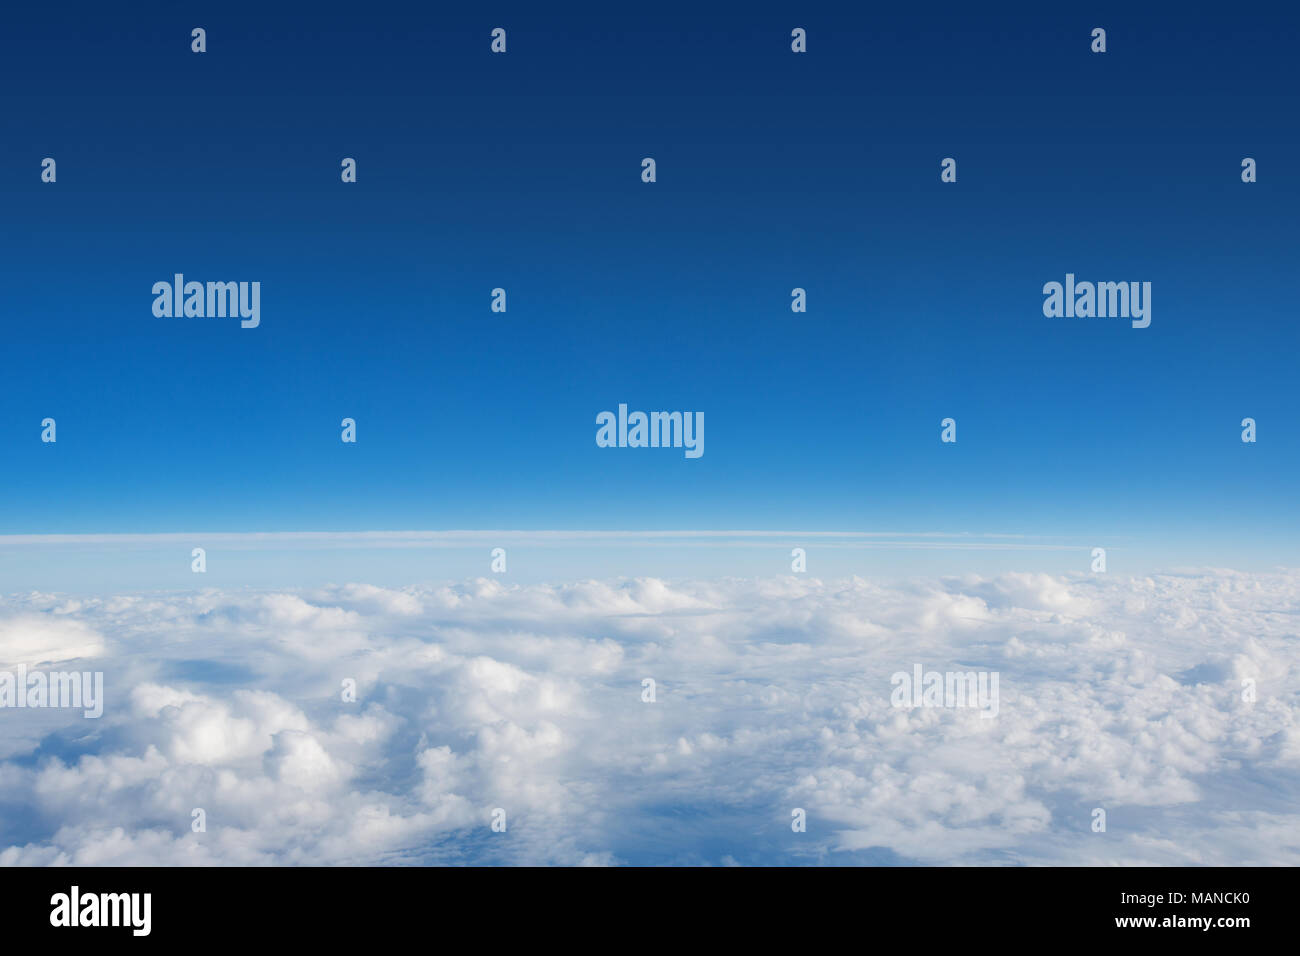 Above The Clouds Photo of puffy clouds - Stock Image